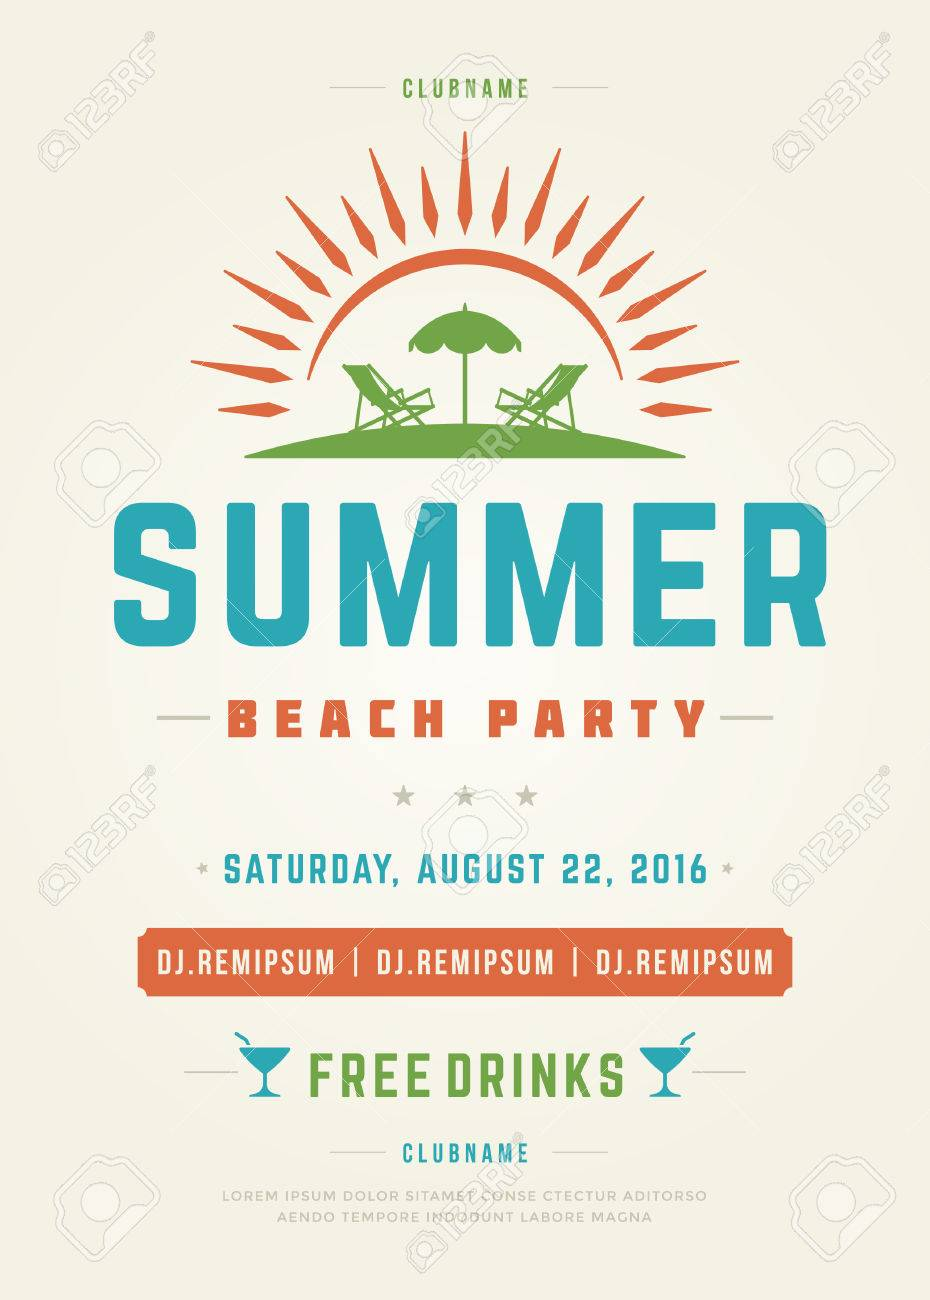 retro summer holidays beach party poster or flyer design template